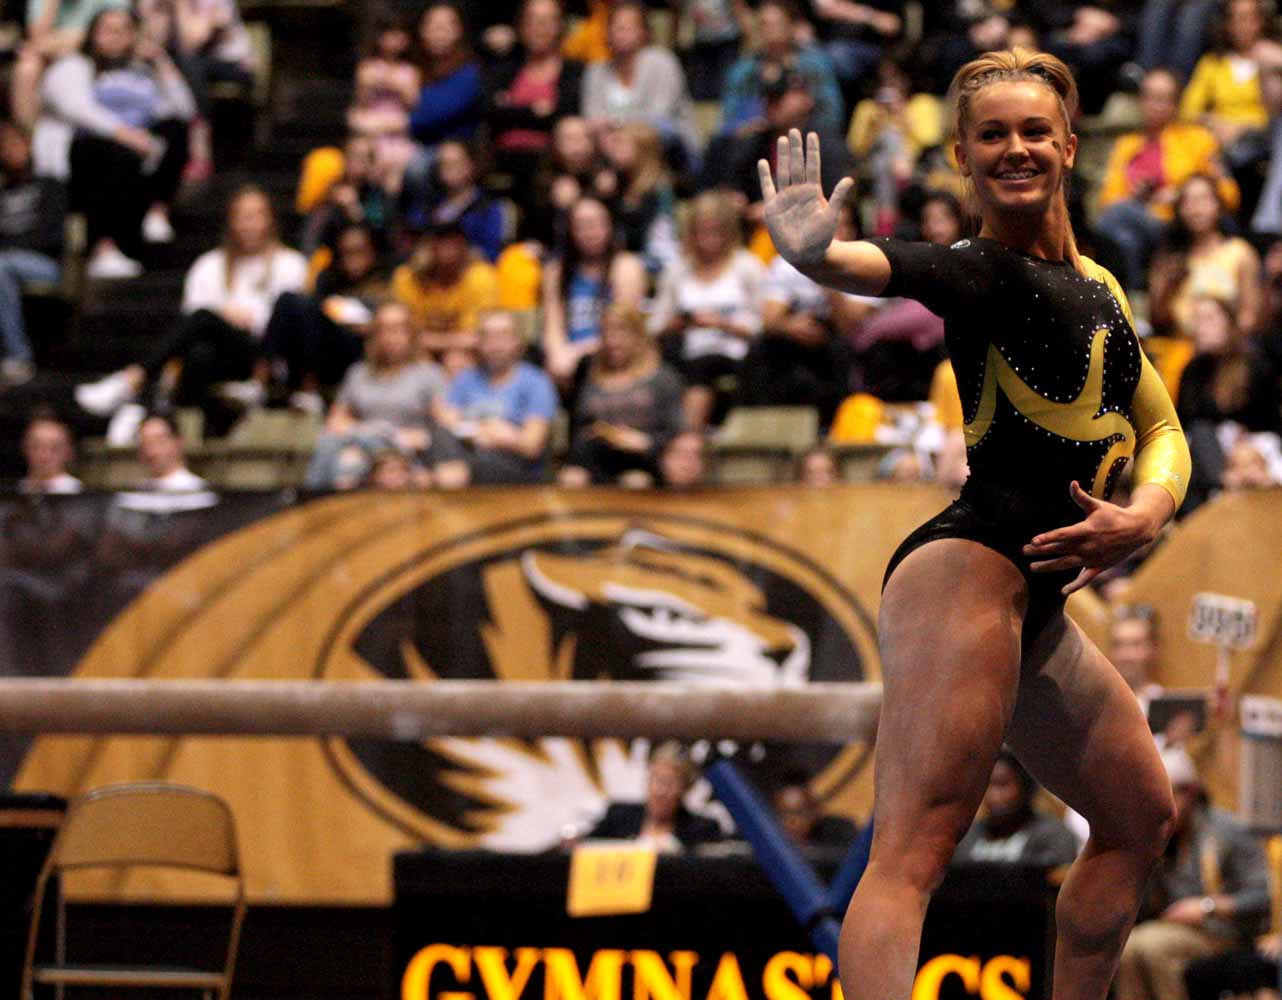 Mizzou freshman Morgan Porter poses during her floor routine performance Friday evening, Feb. 19, 2016 at the Hearnes Center near the end the gymnastics competition against the University of Florida.